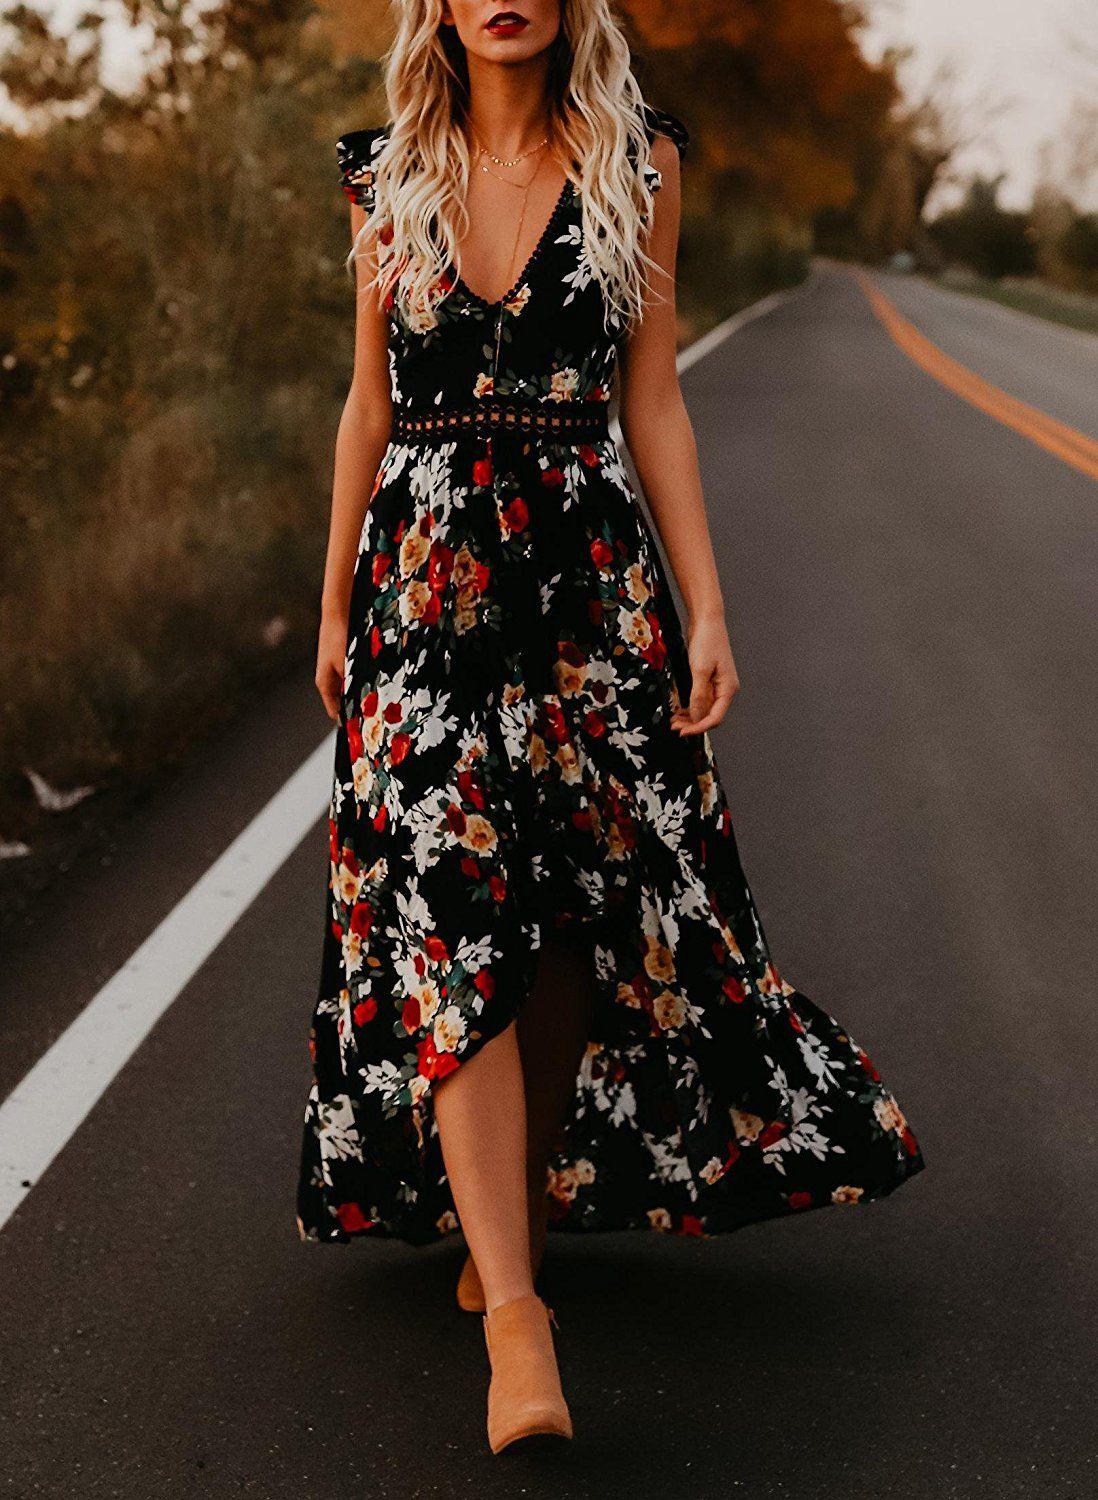 4d01a56494a2 Bbalizko Womens Sleeveless Long Party Dress Floral Print Embroidered  High-Low Hem Maxi Dress at